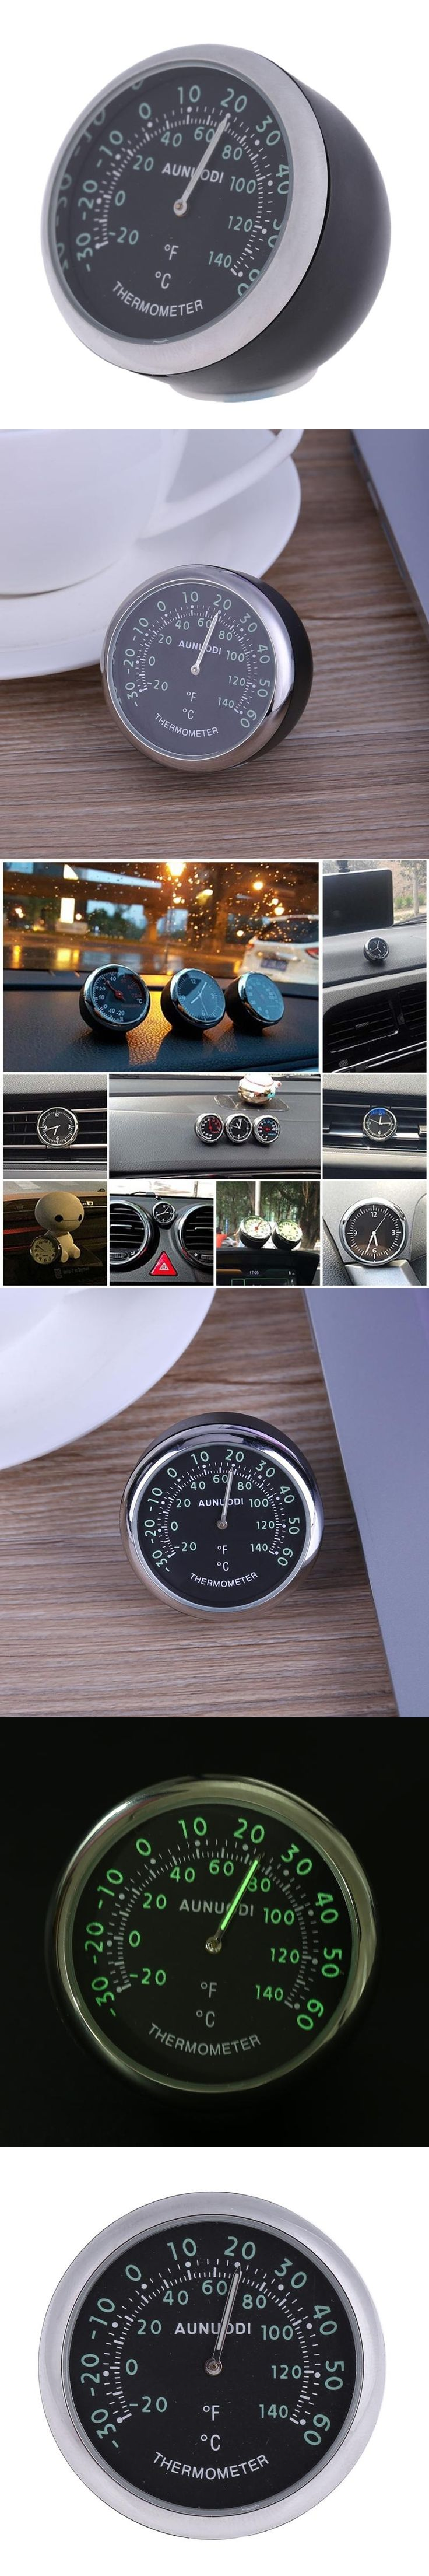 Car Interior Decoration Quartz Clock Shape Mechanical Thermometer Hygrometer Car Styling Interior Accessories